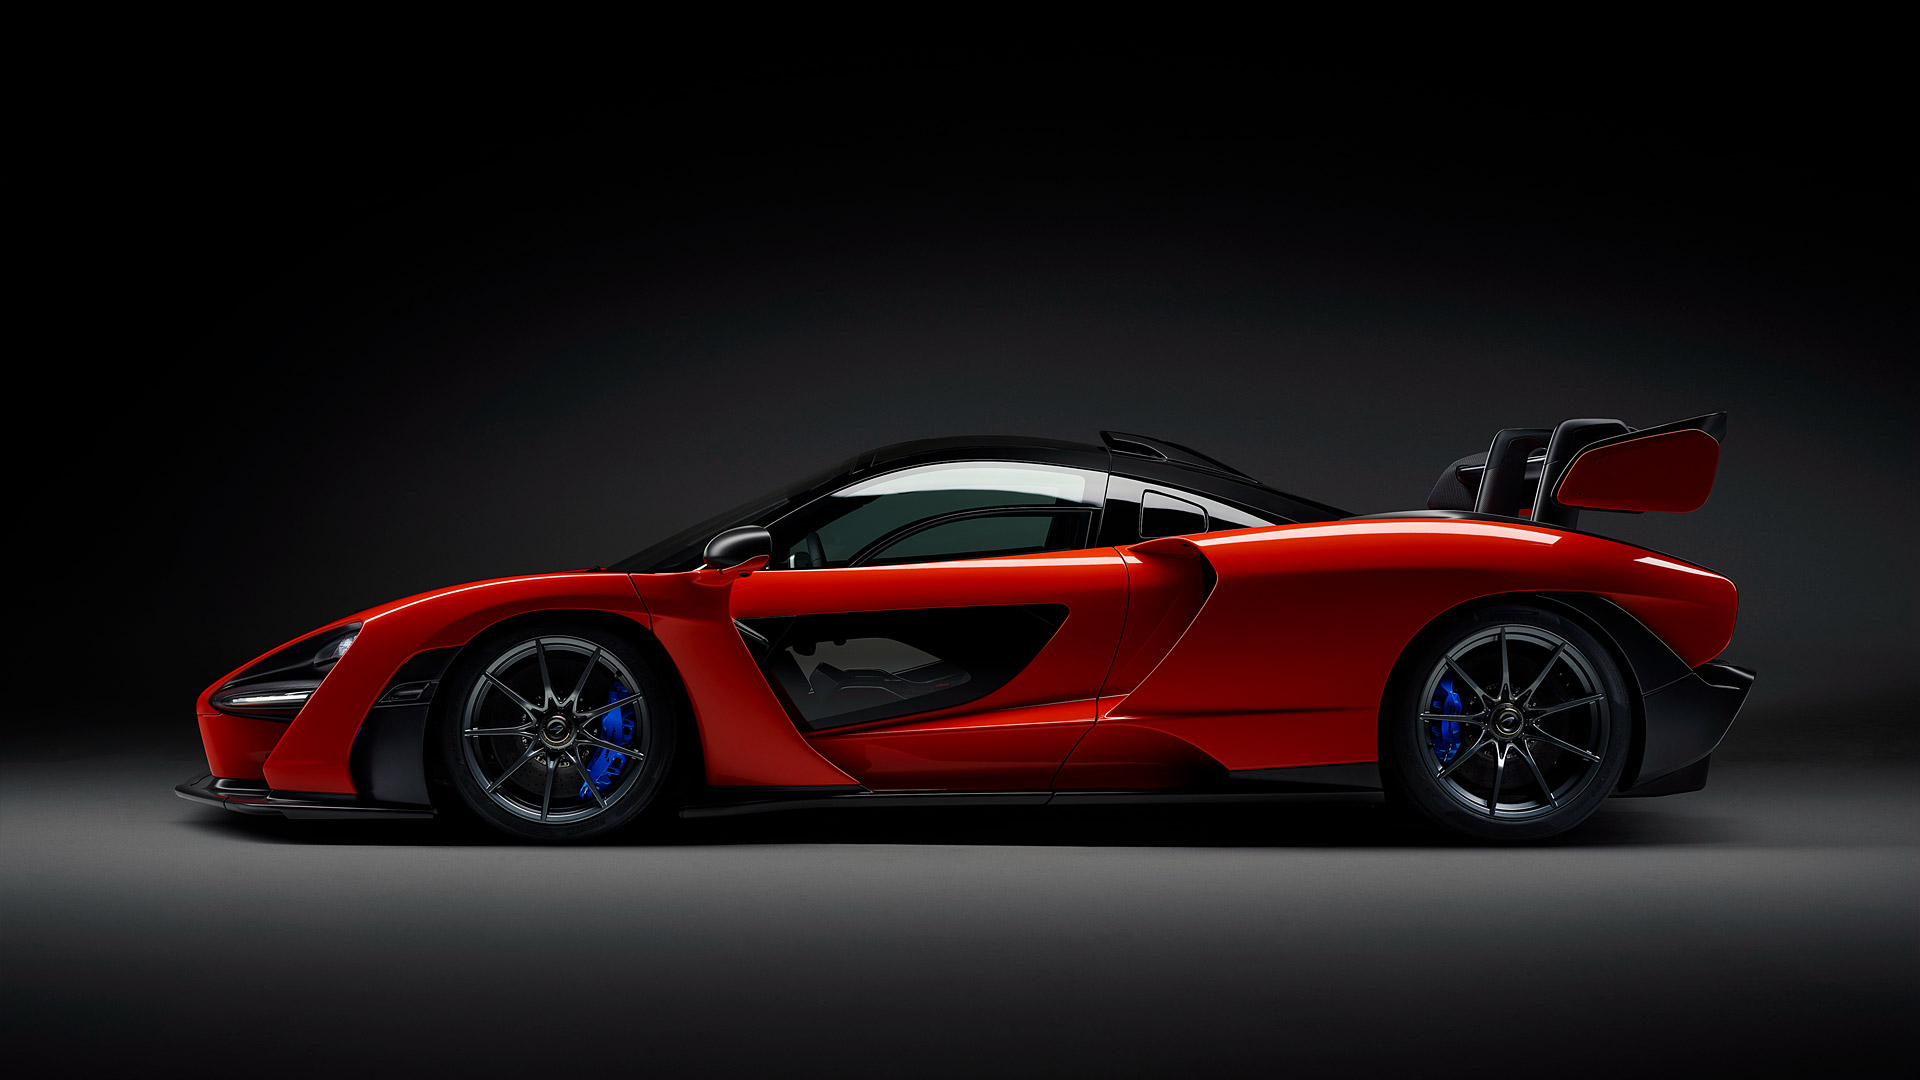 2019 McLaren Senna Wallpapers HD Images   WSupercars 1920x1080